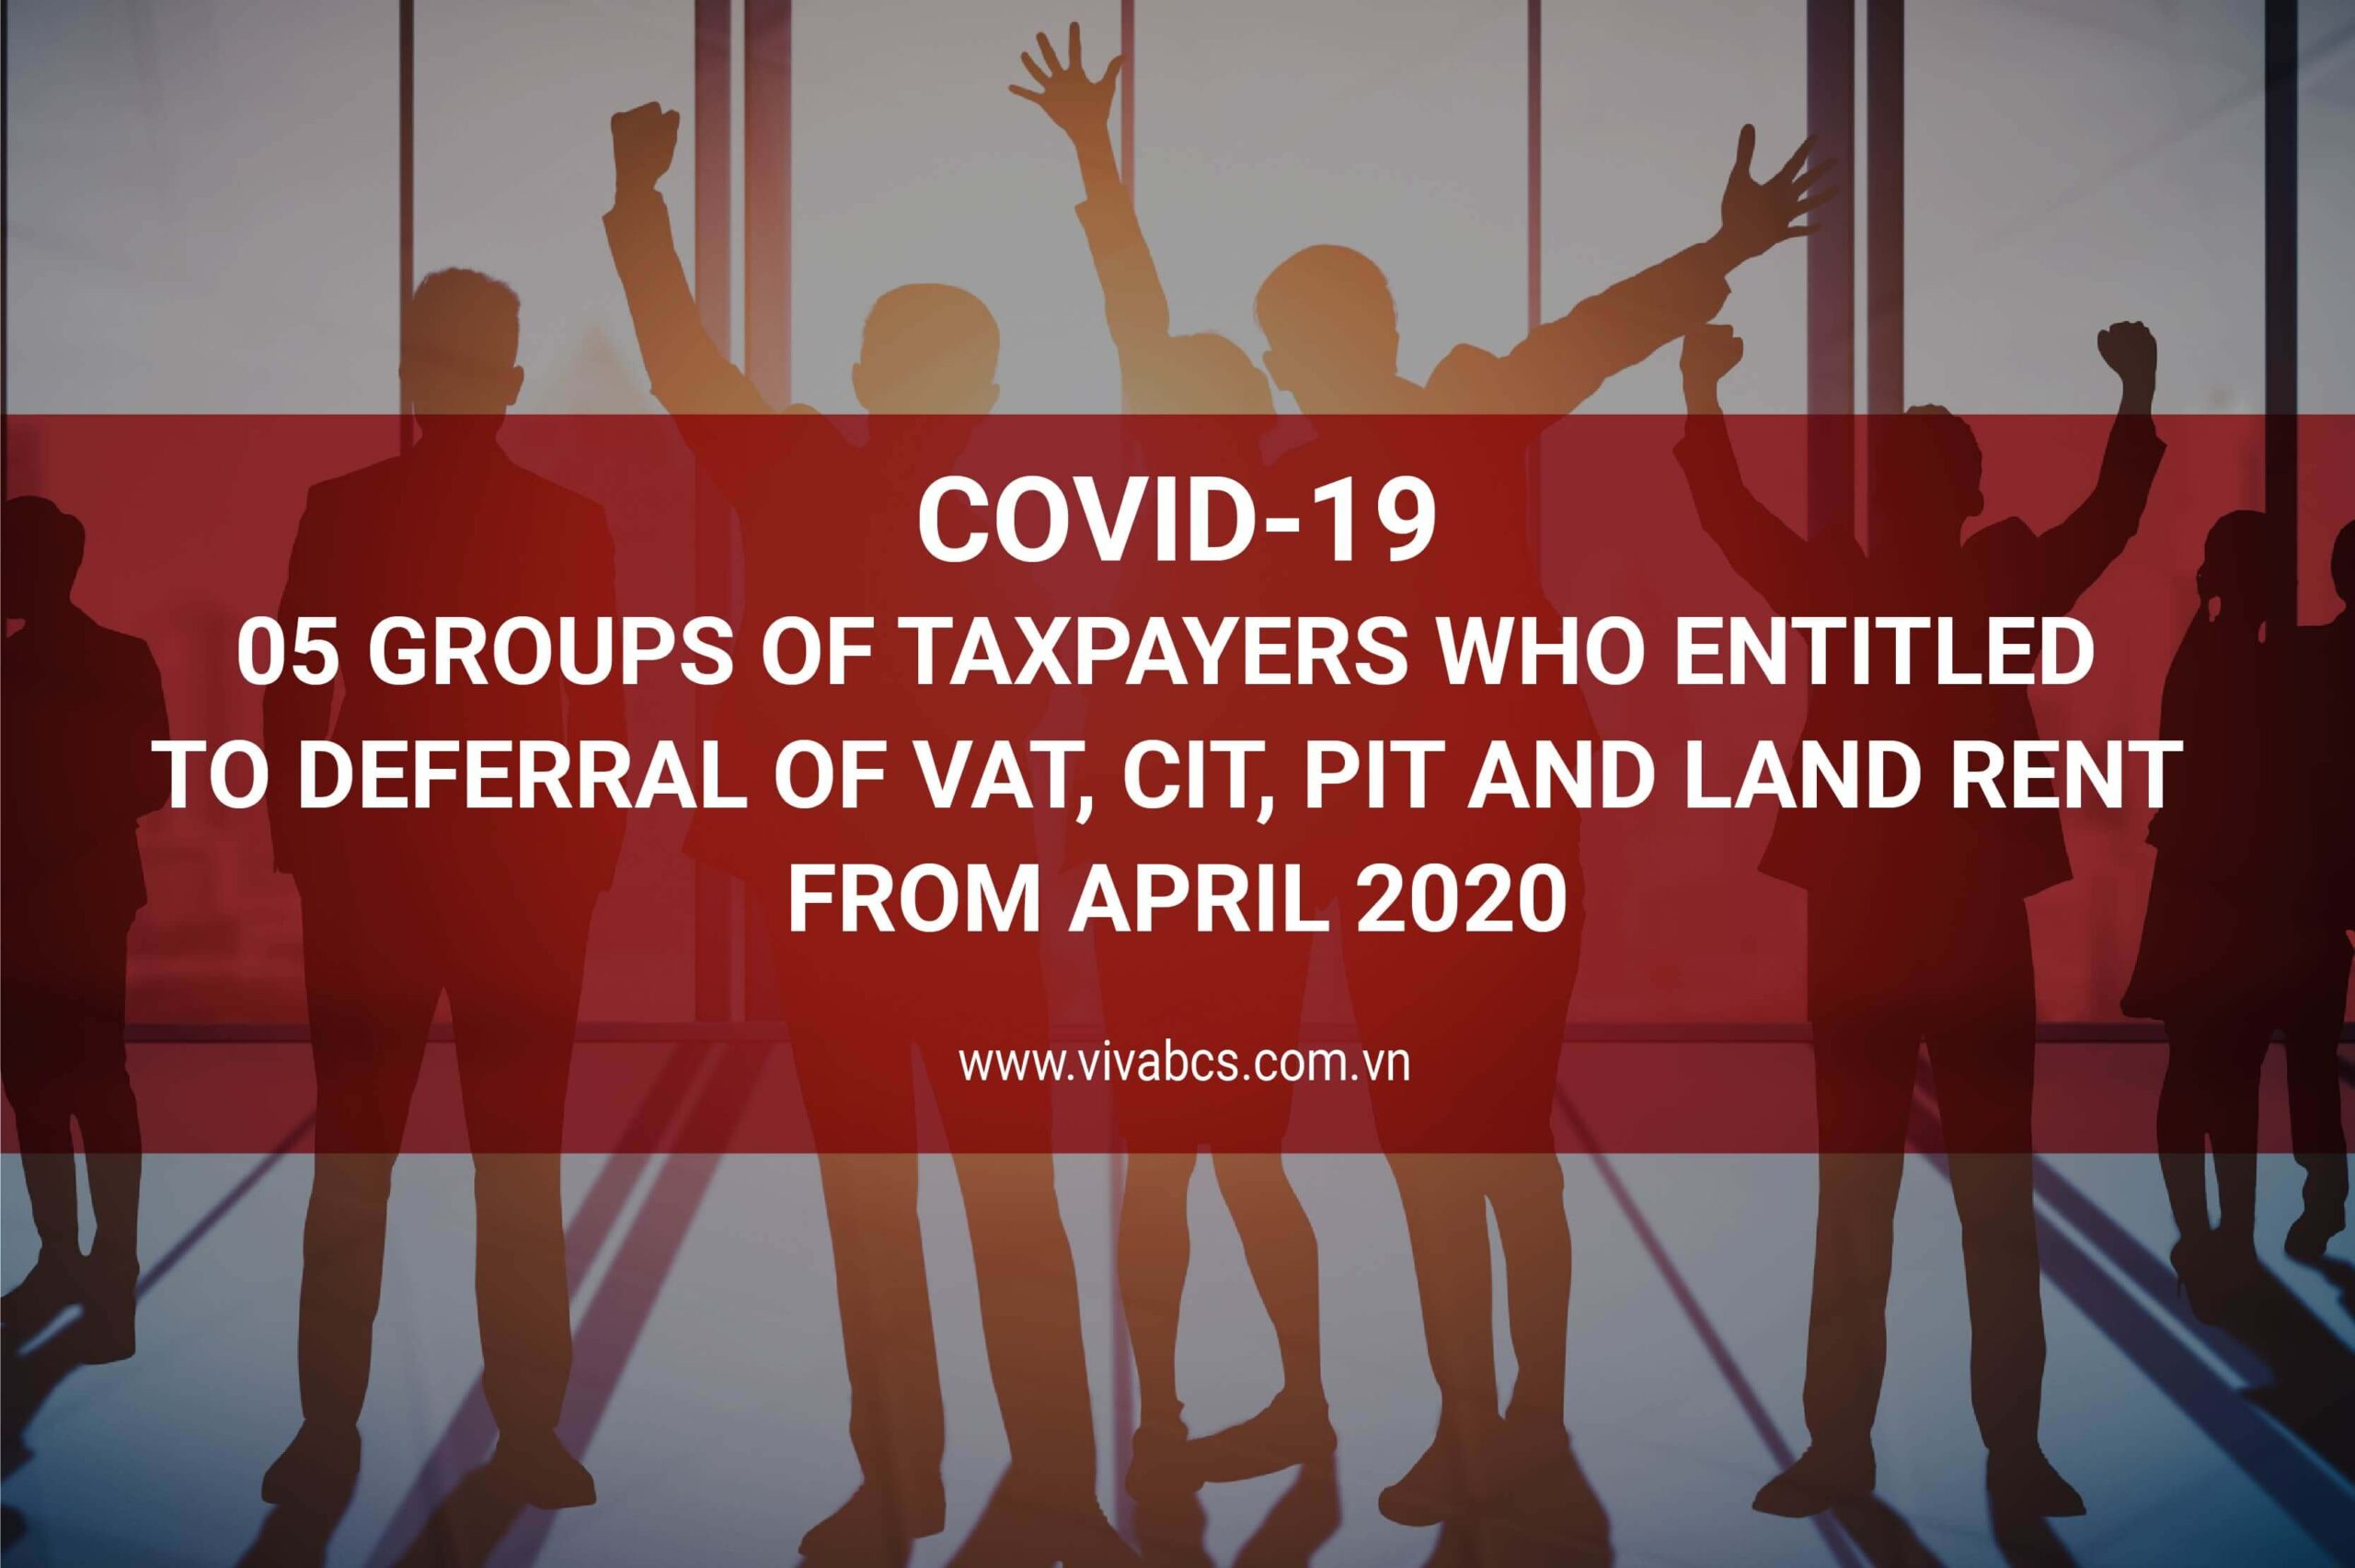 05 Groups Of Taxpayers Who Entitled On Tax Deferral And Land Rent